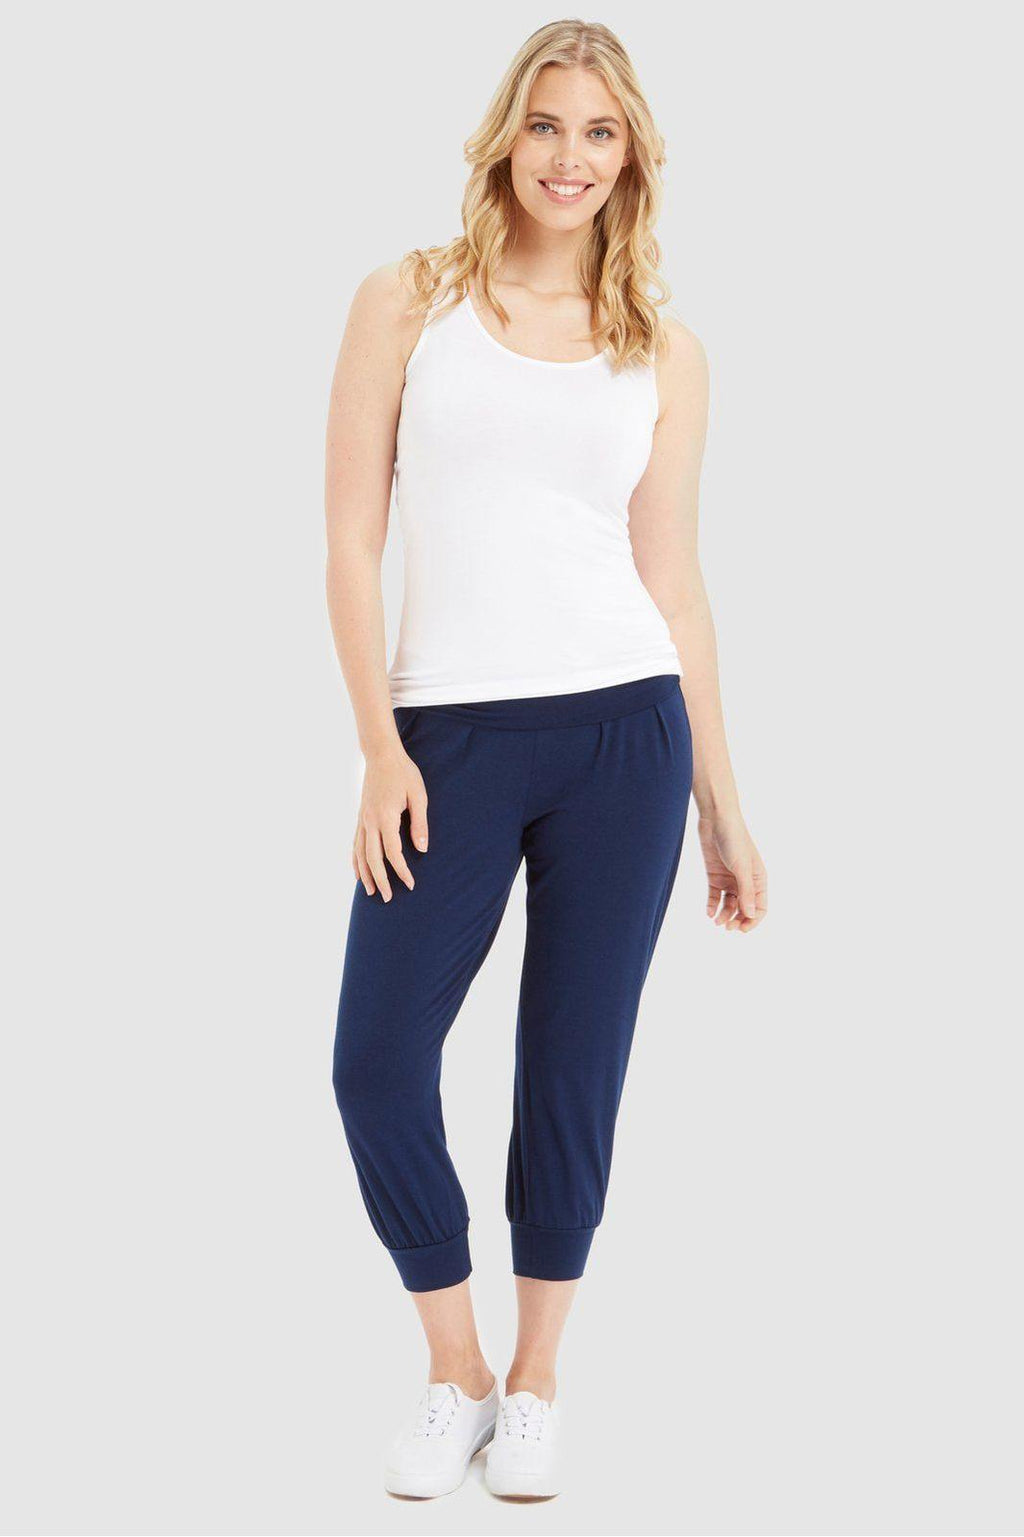 Bamboo Body Summer Slouch Pant - Navy | Buy Online at Weekends